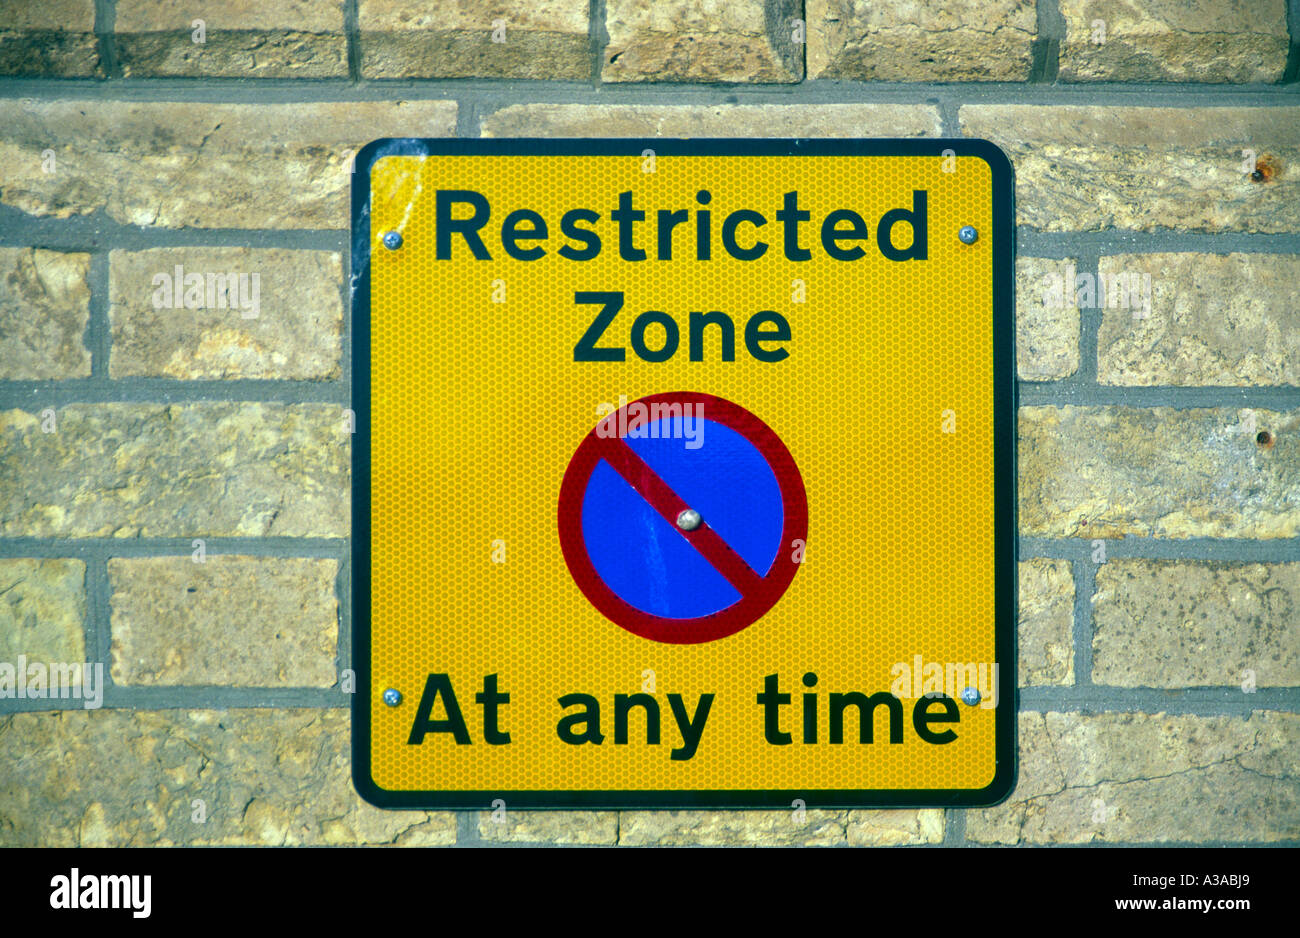 Restricted zone yellow rectangular no parking street sign fixed on brick wall - Stock Image